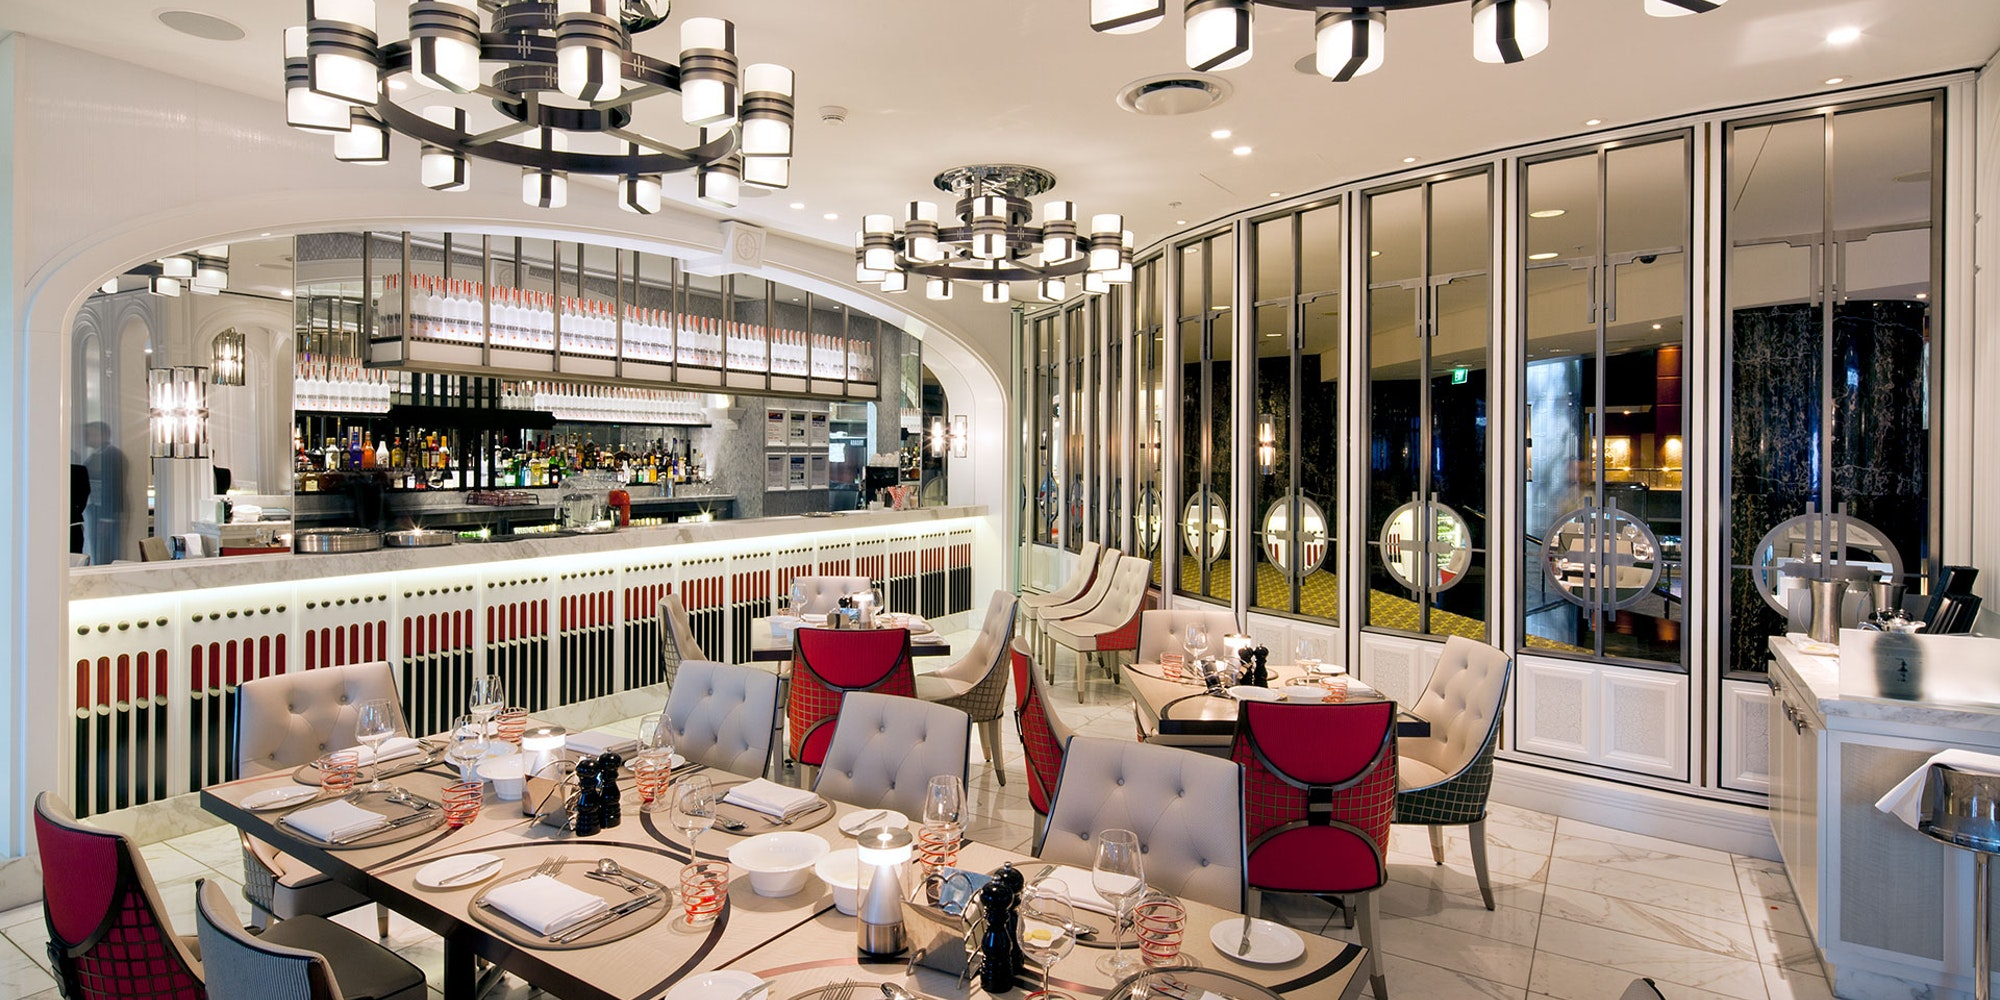 Slim LED strip in application, installed in the Conservatory Brasserie in Melbourne. Primo X2 with an IP68 rating was also IP rated used in the food display which made it possible to submerse the installation inside the ice trough.